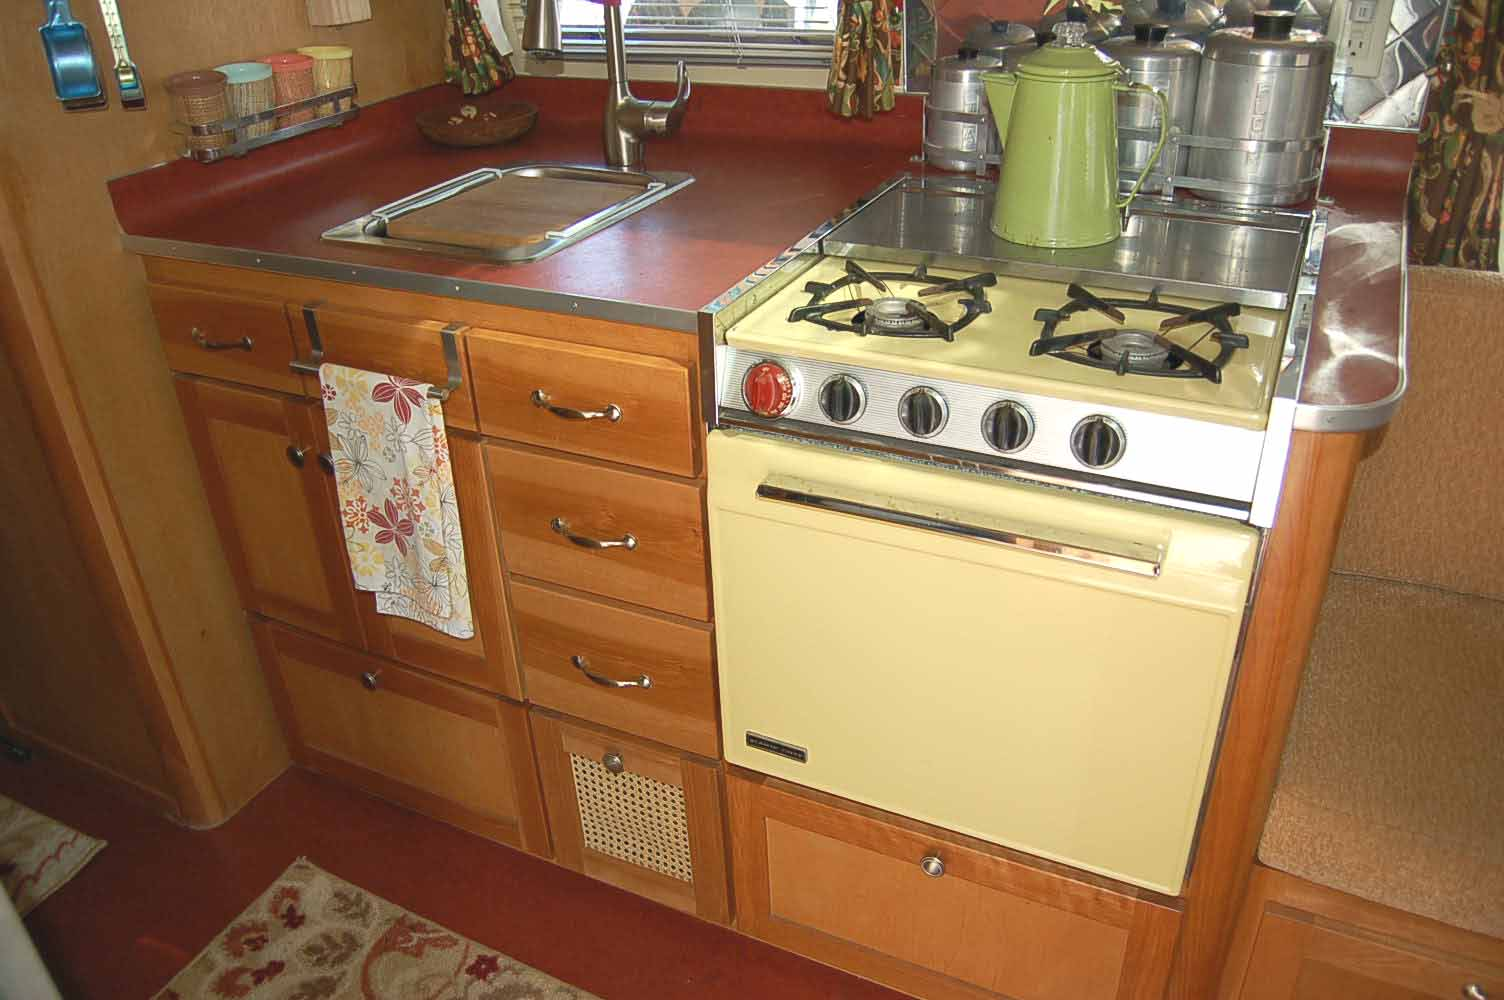 Photo Shows Restored 1965 Airstream Tradewind Trailer With Classic Yellow  Gas Range And Oven